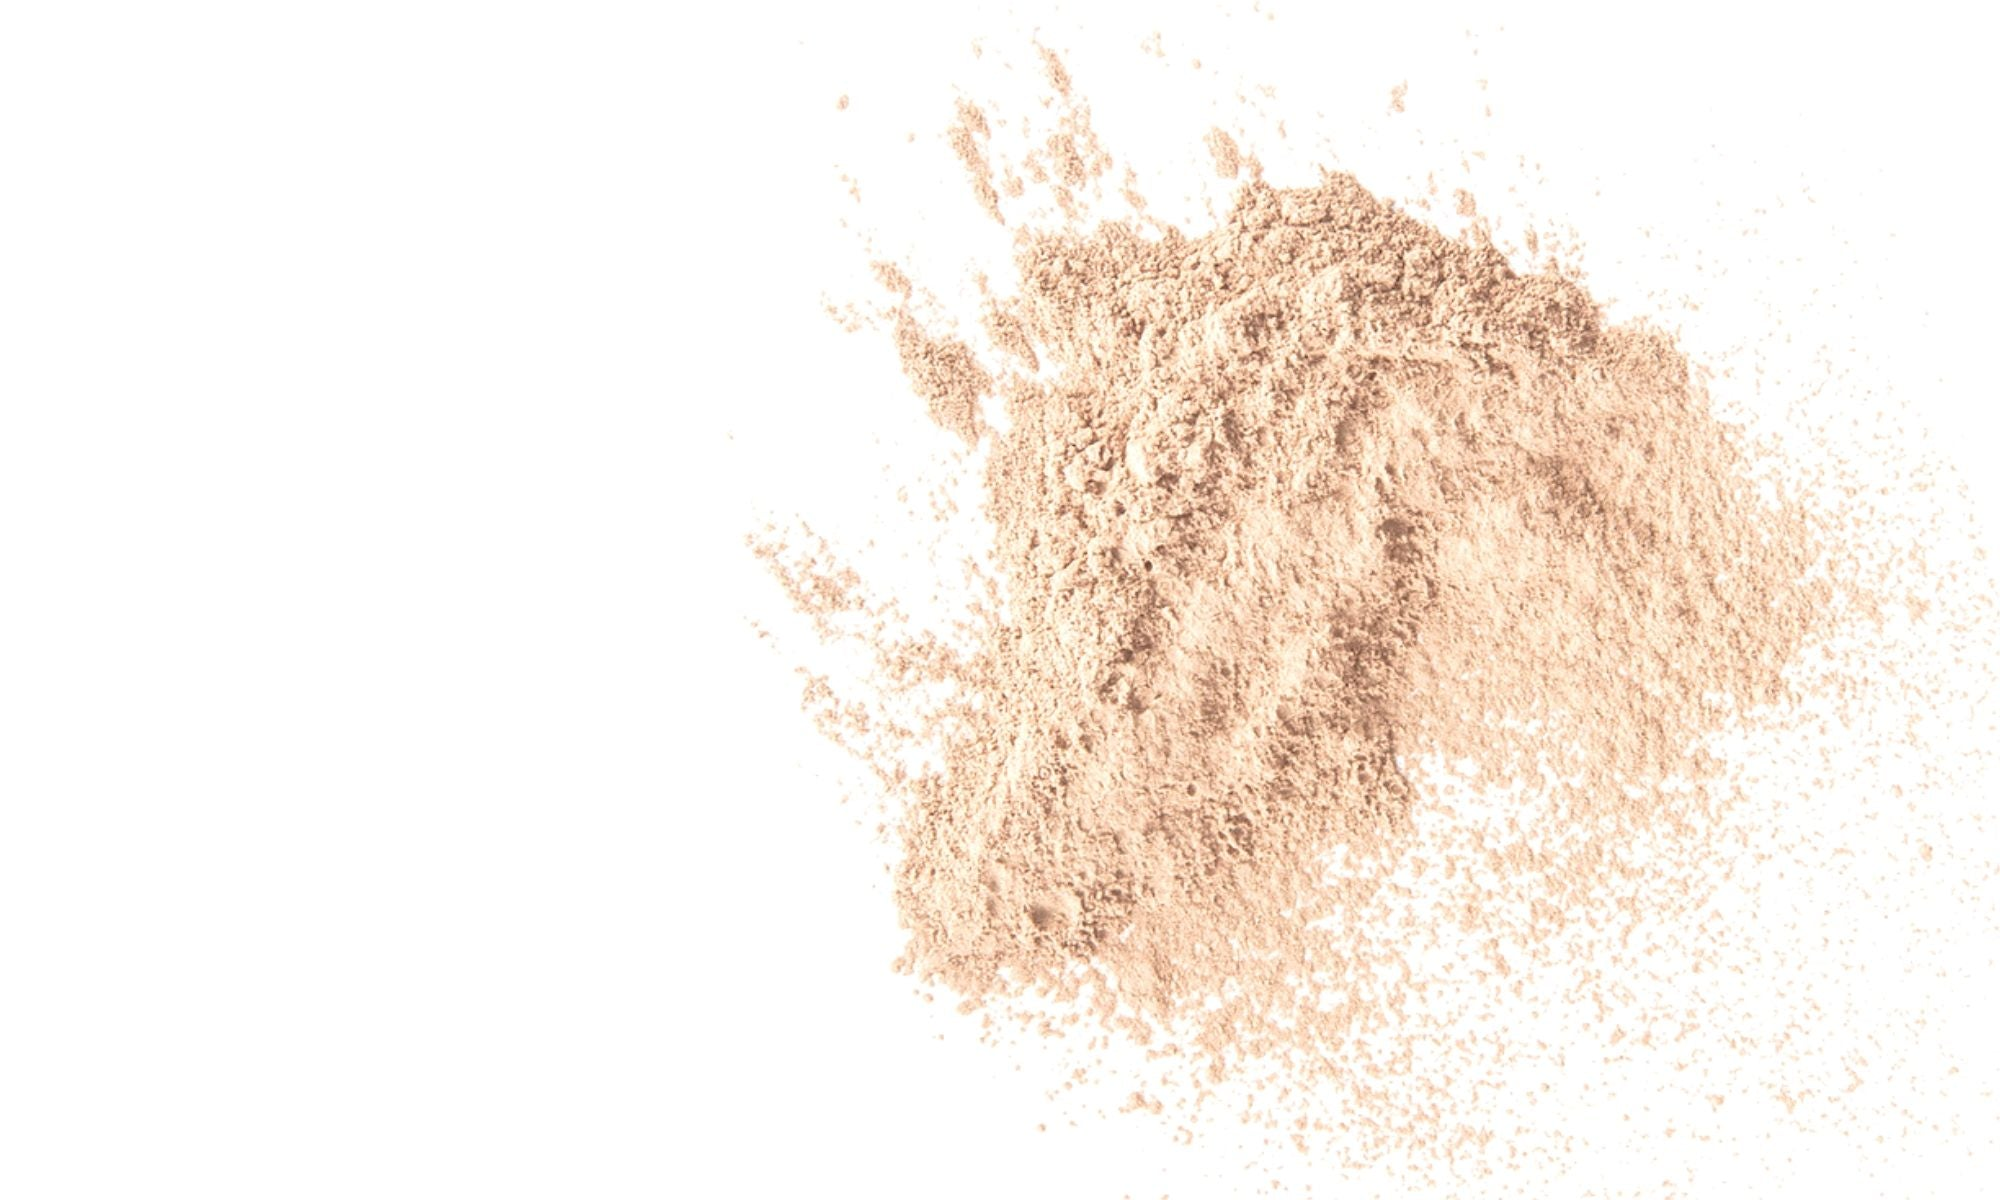 Shine Control Pressed Powder: Ingredients